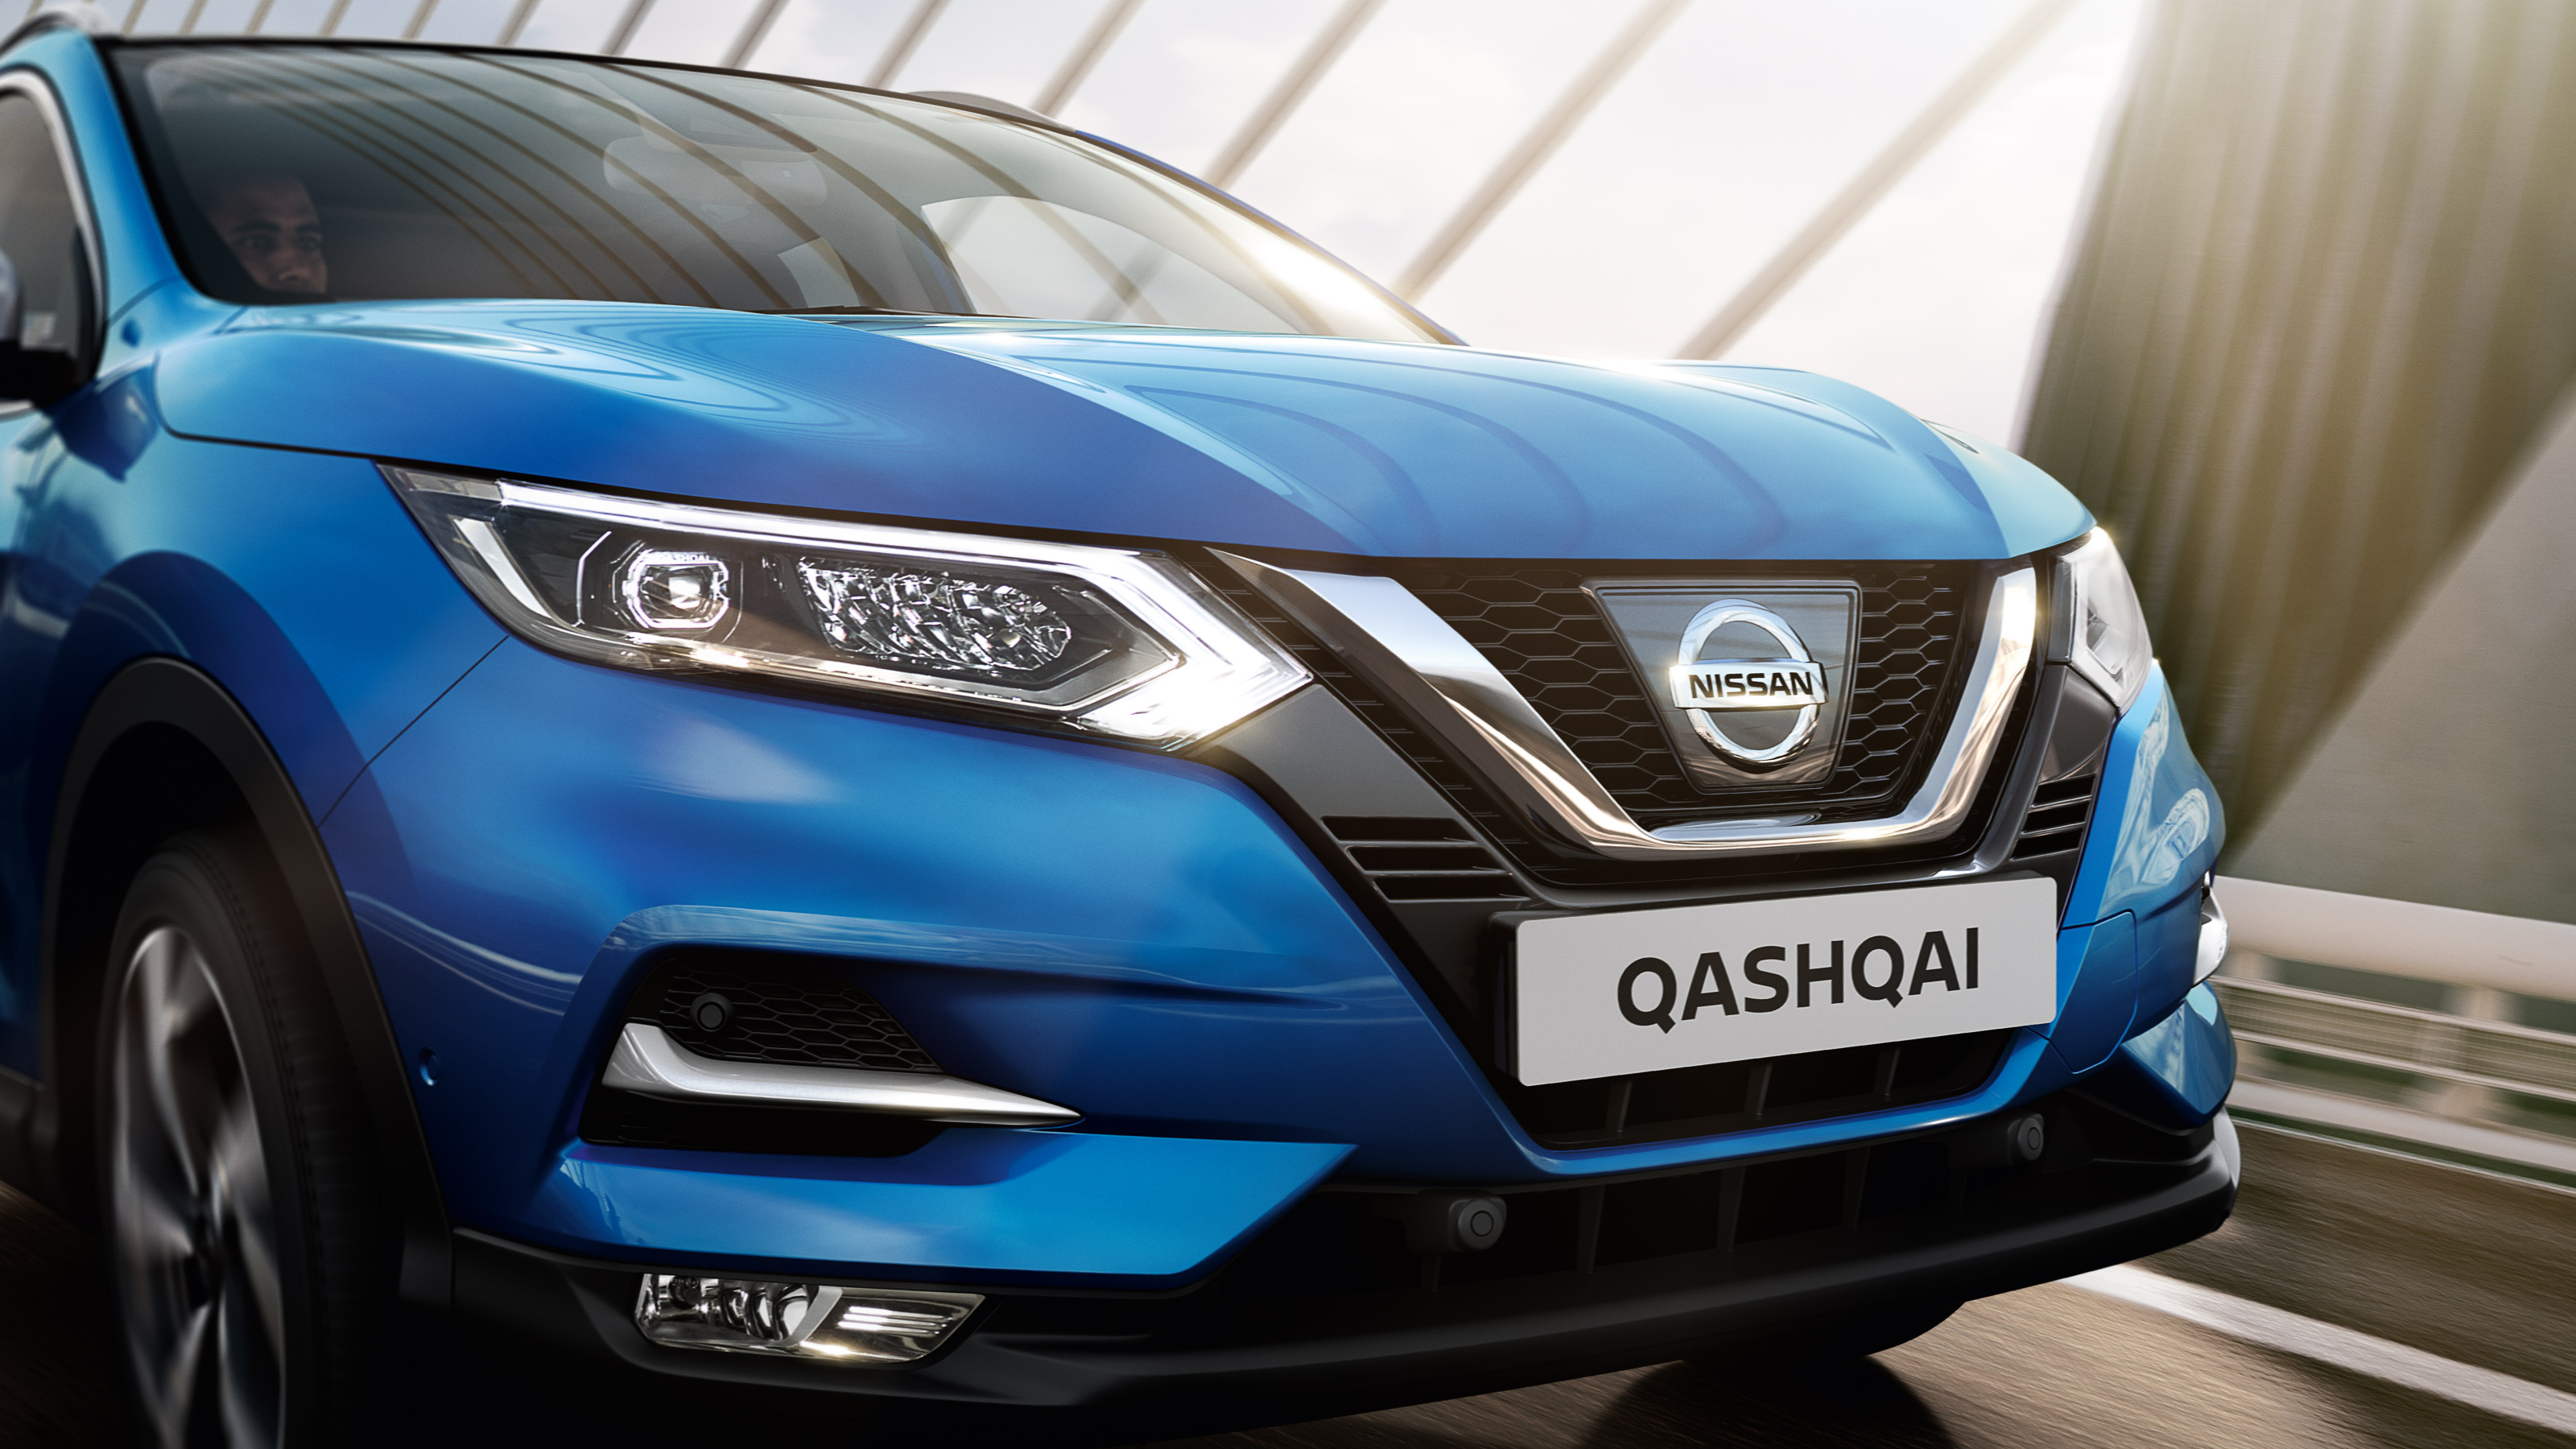 Nissan Qashqai front view driving on a bridge